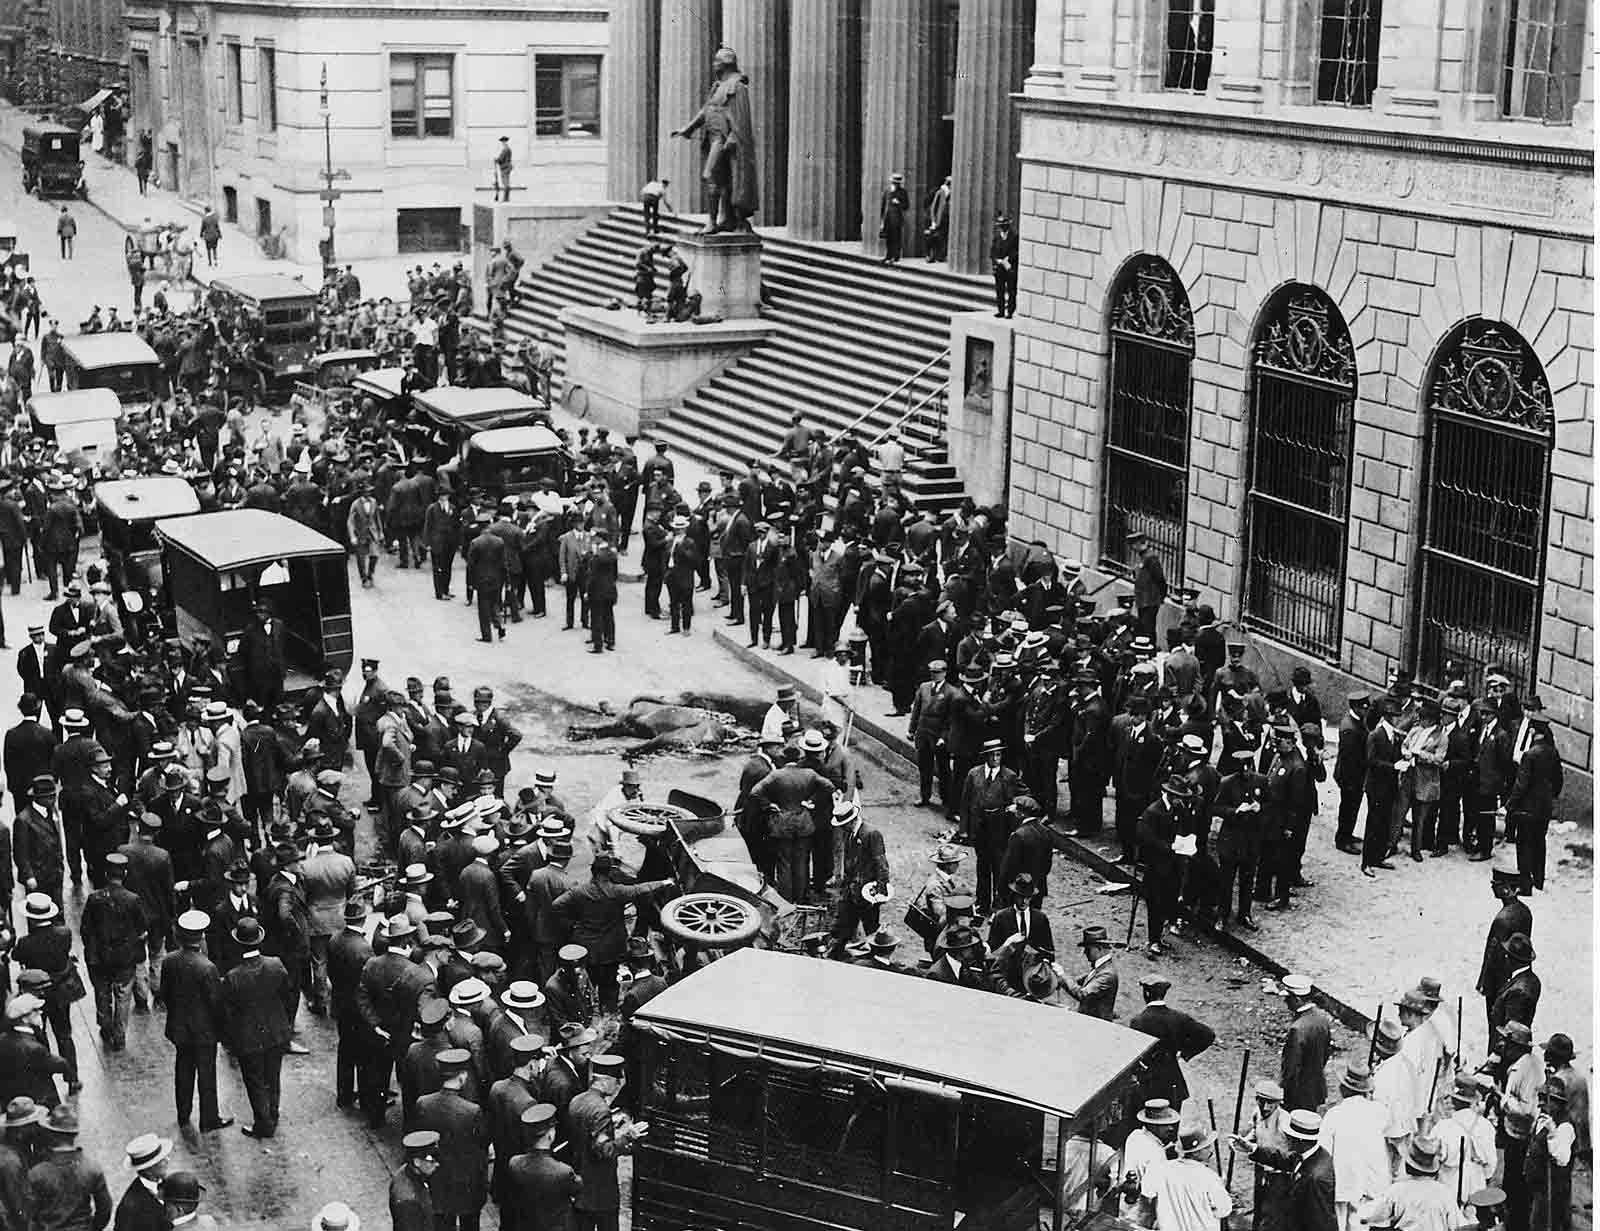 ftermath of a bombing on September 16, 1920, at Wall Street and Broad Street in New York City that killed 38 people and injured hundreds.